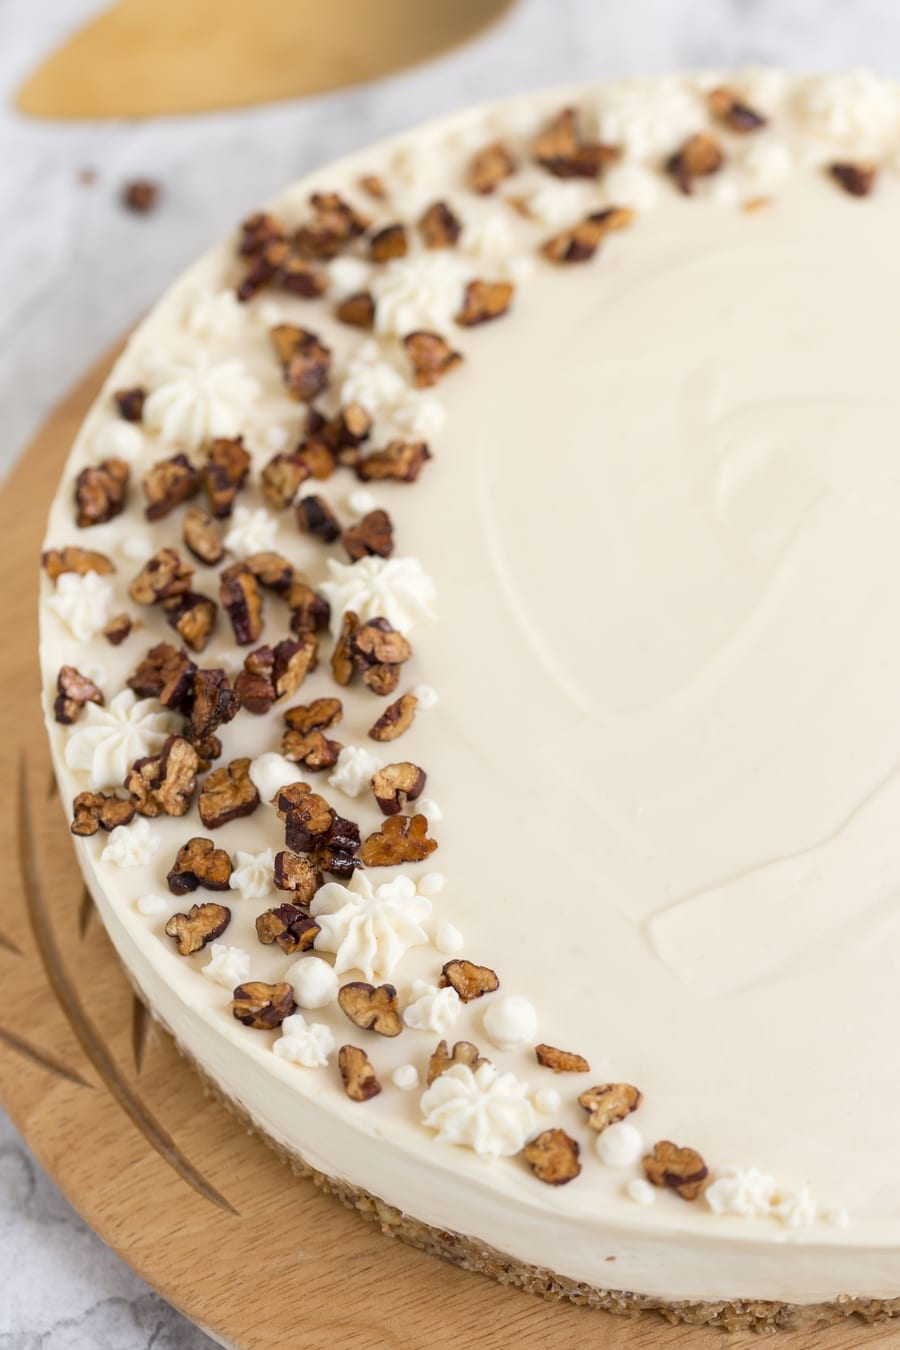 Roasted candied pecans and maple cream on cake.